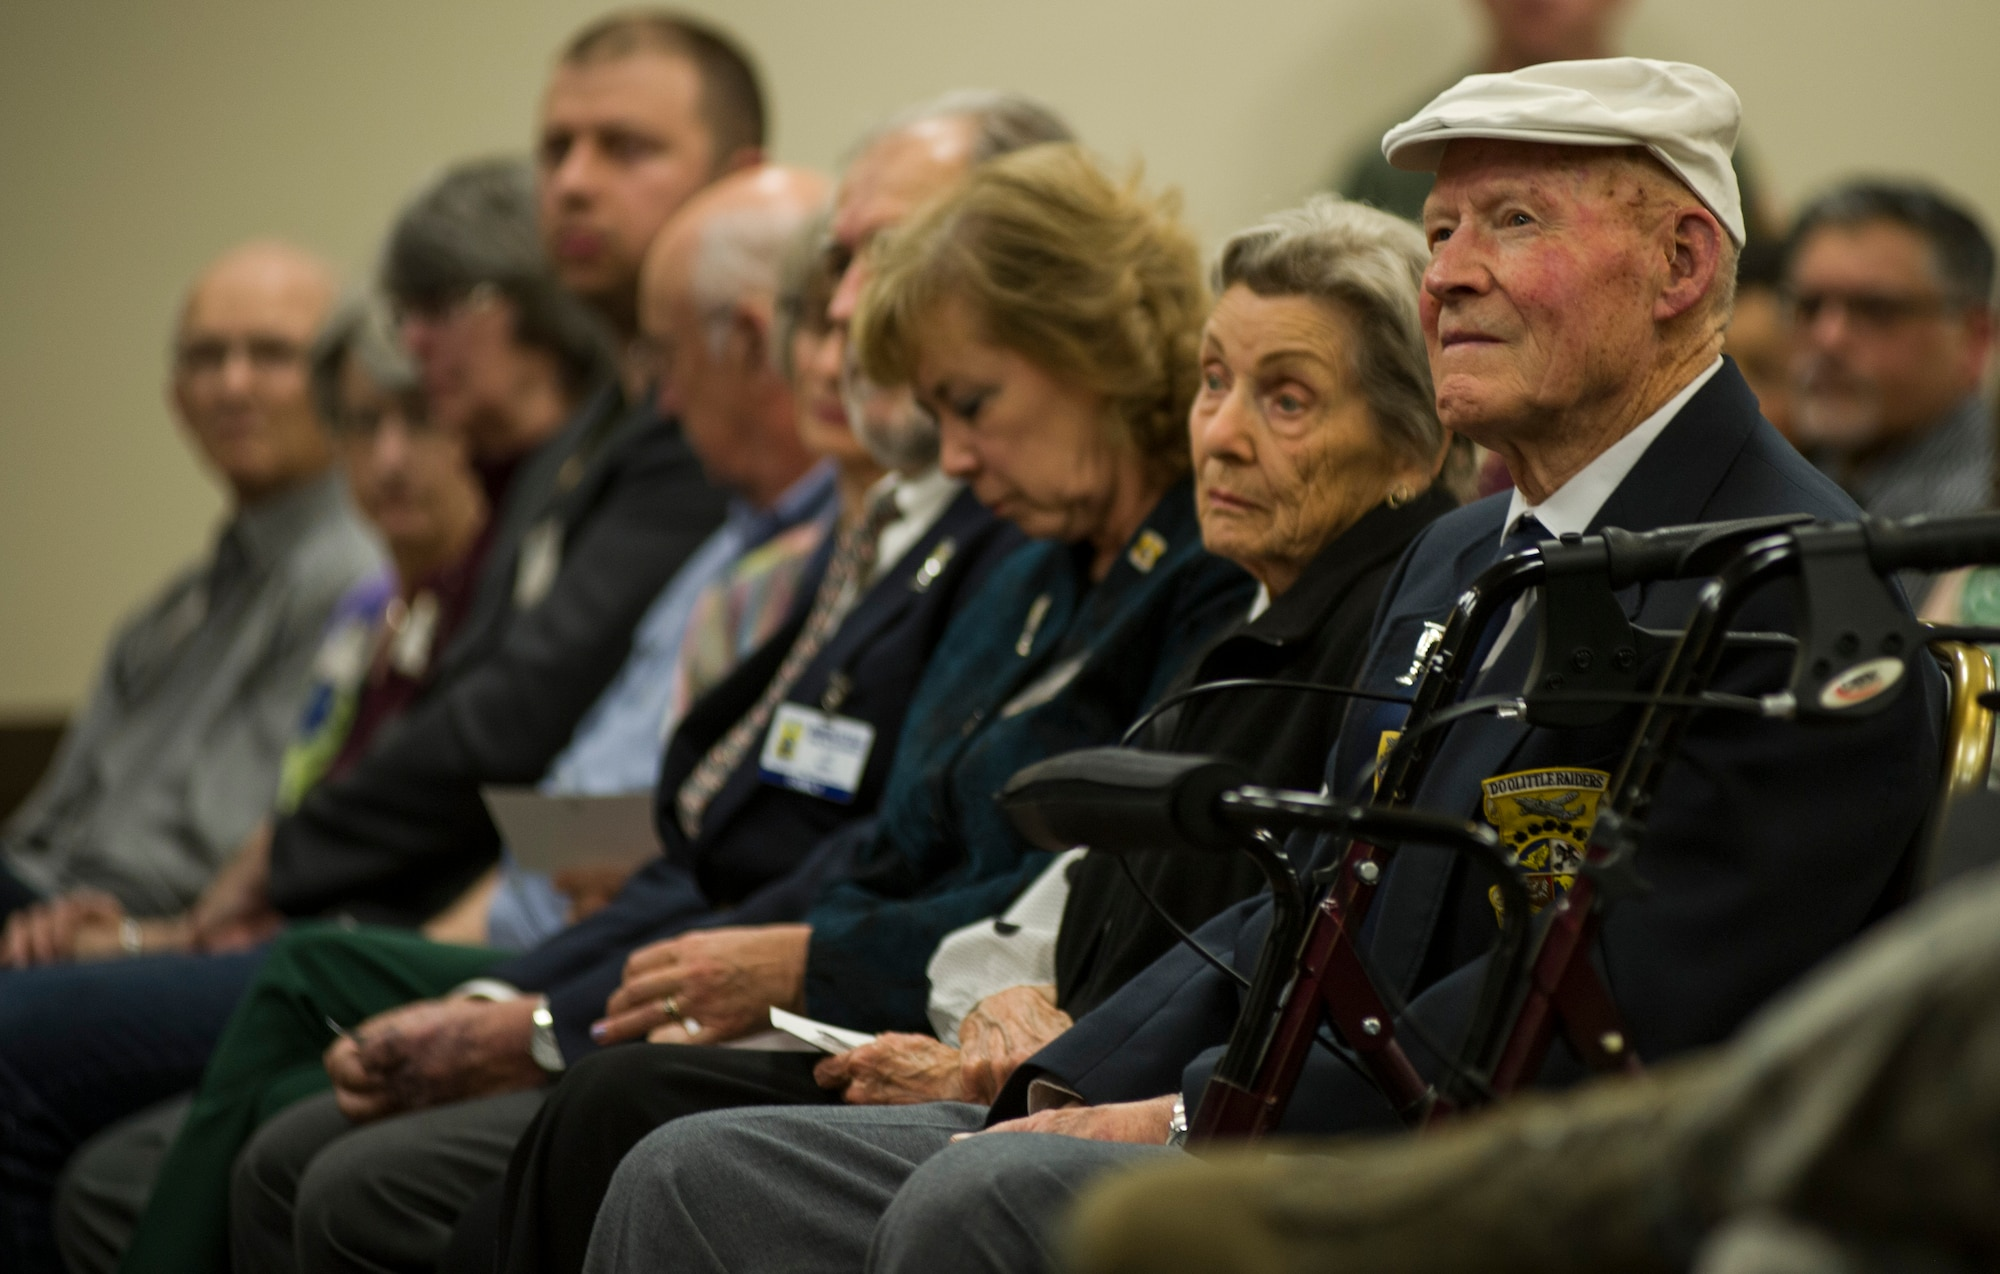 Staff Sgt. David Thatcher, a Doolittle Raider, attends the Doolittle Raider ceremony April 18, 2016, at Fairchild Air Force Base, Wash. The Doolittle Raid was a pivotal point in World War II giving a morale boost to America and proving to the Japanese military that their home islands were not invincible.  (U.S. Air Force photo/Airman 1st Class Sean Campbell)